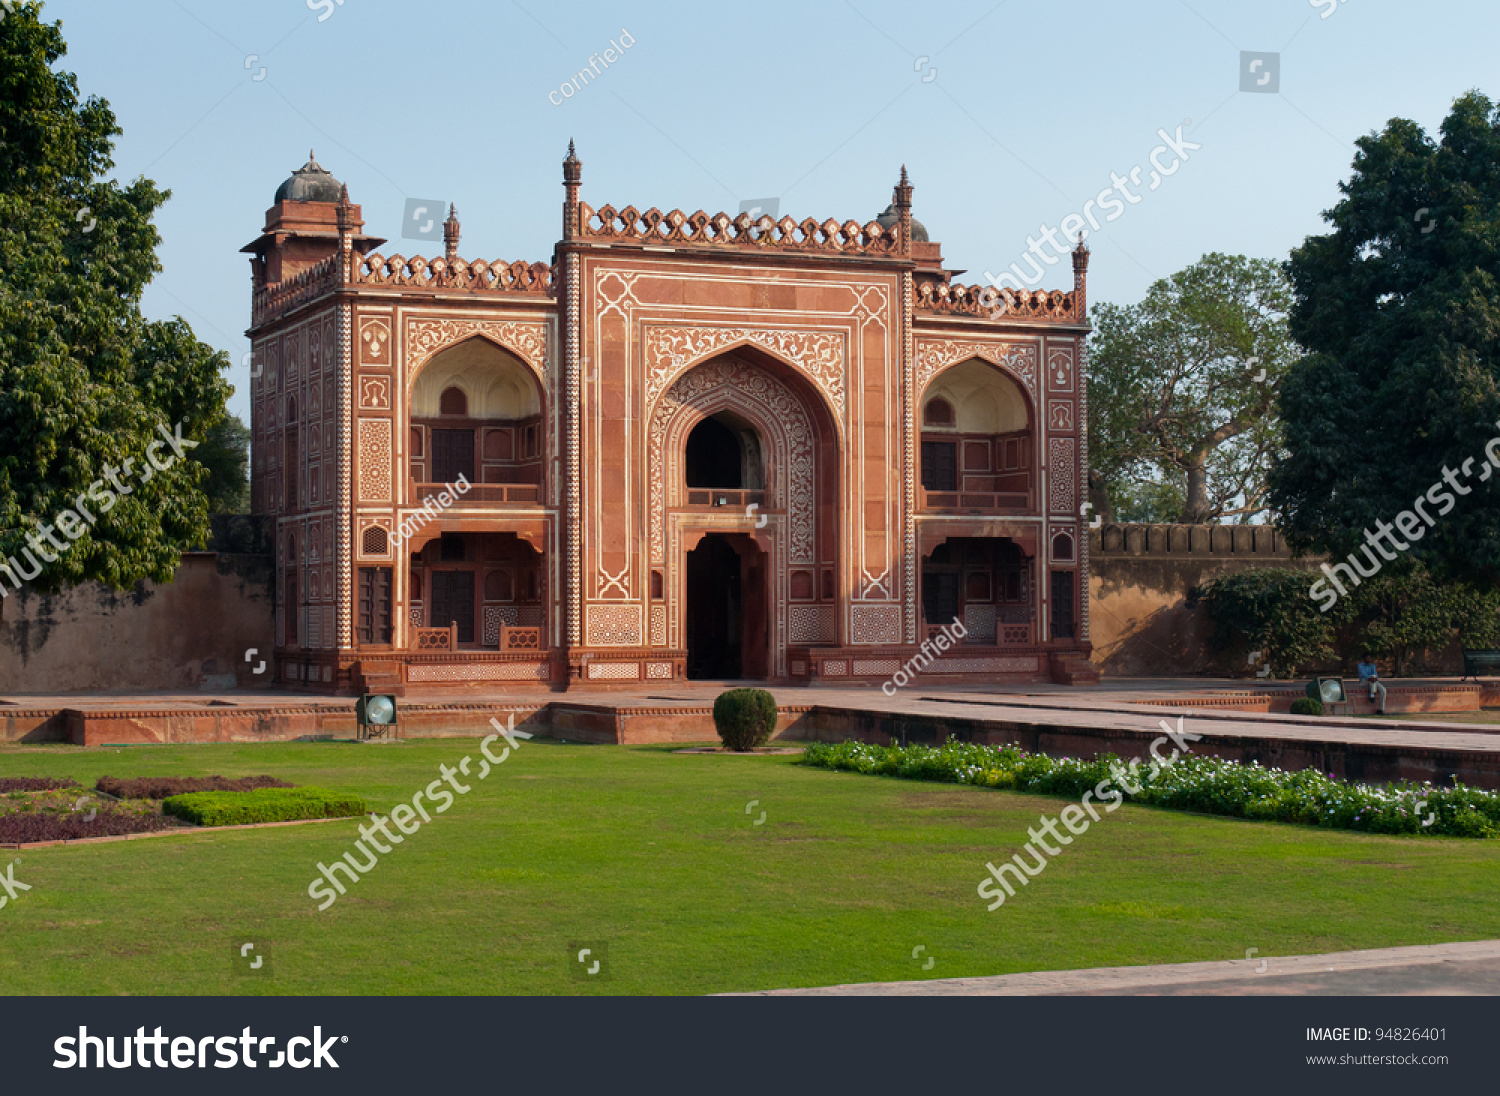 Red Sandstone Gateway To The Itimad-Ub-Daulah'S Tomb. Also ...